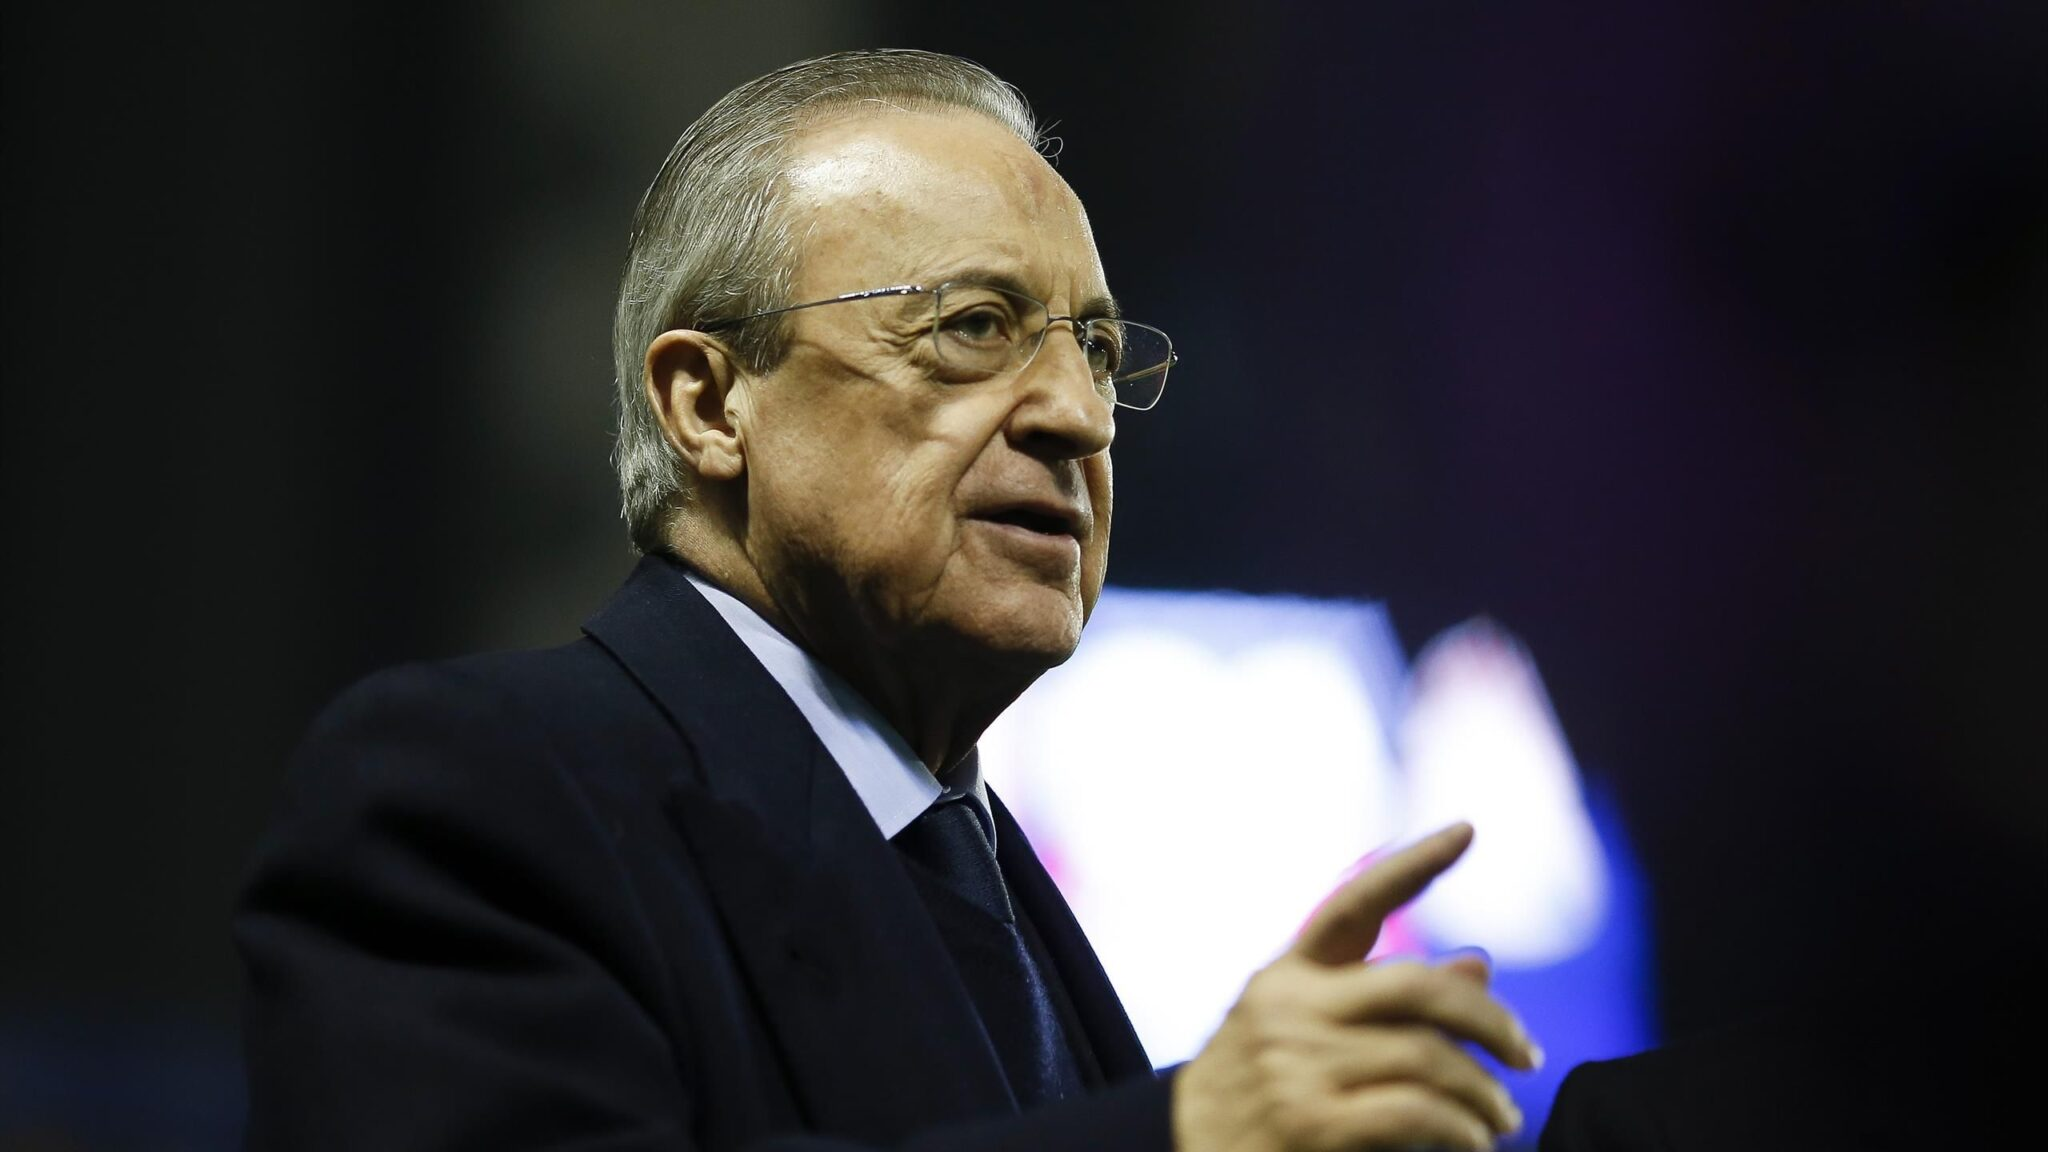 President Florentino Perez of Real Madrid Tests Positive For Covid-19